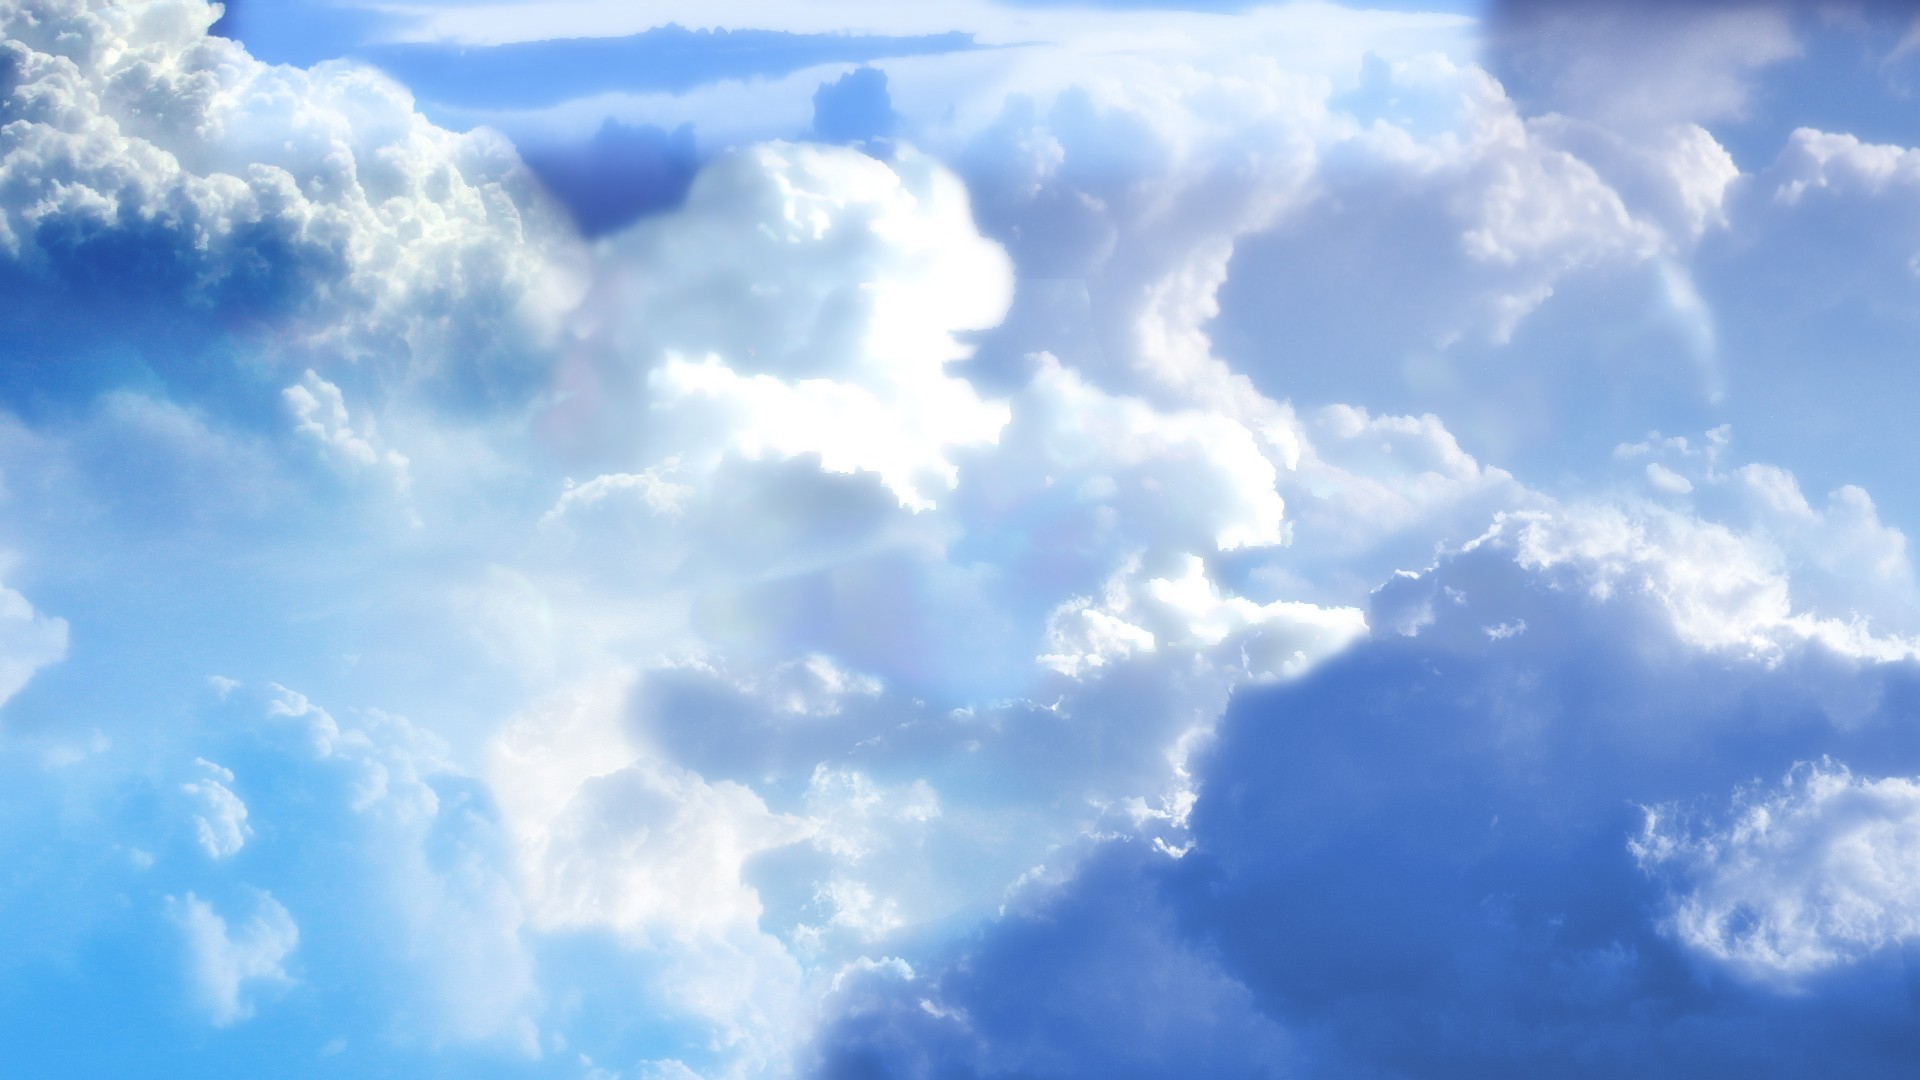 Sky Clouds Hd 1920x1080